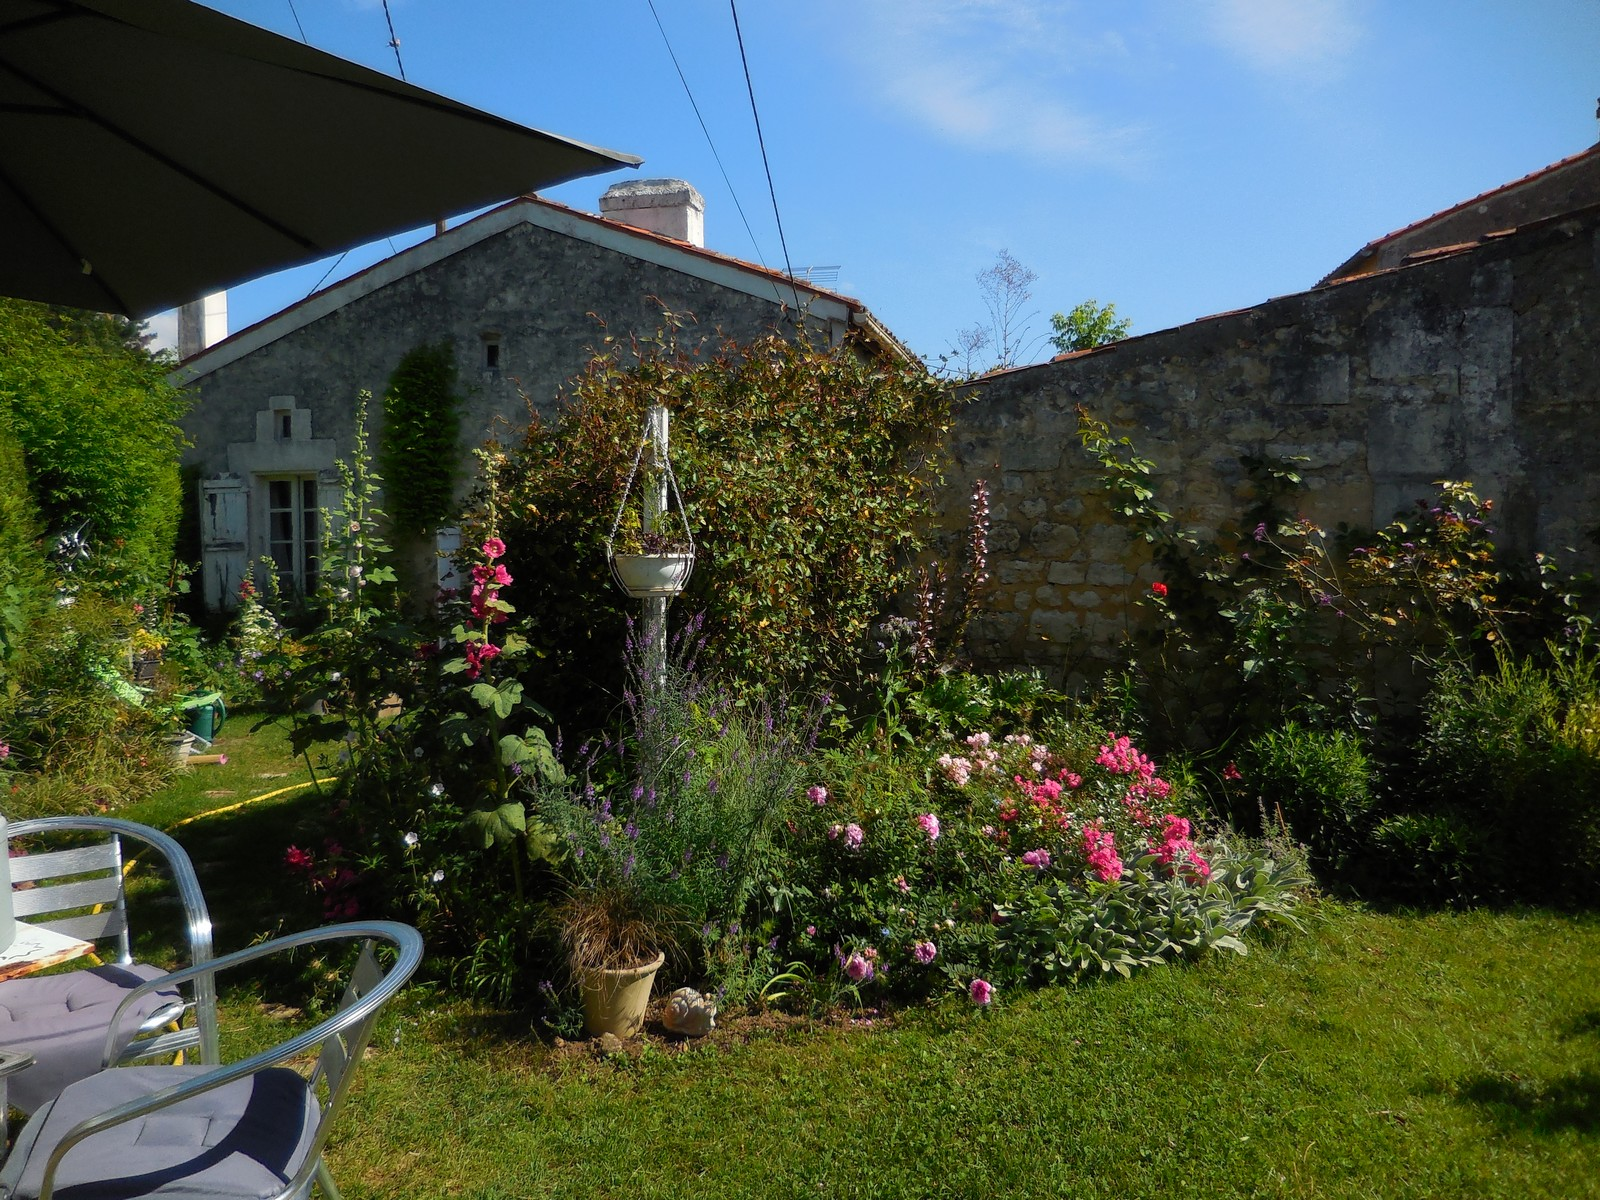 Cagouille 39 s garden un week end au jardin for Vide jardin 2016 la garnache